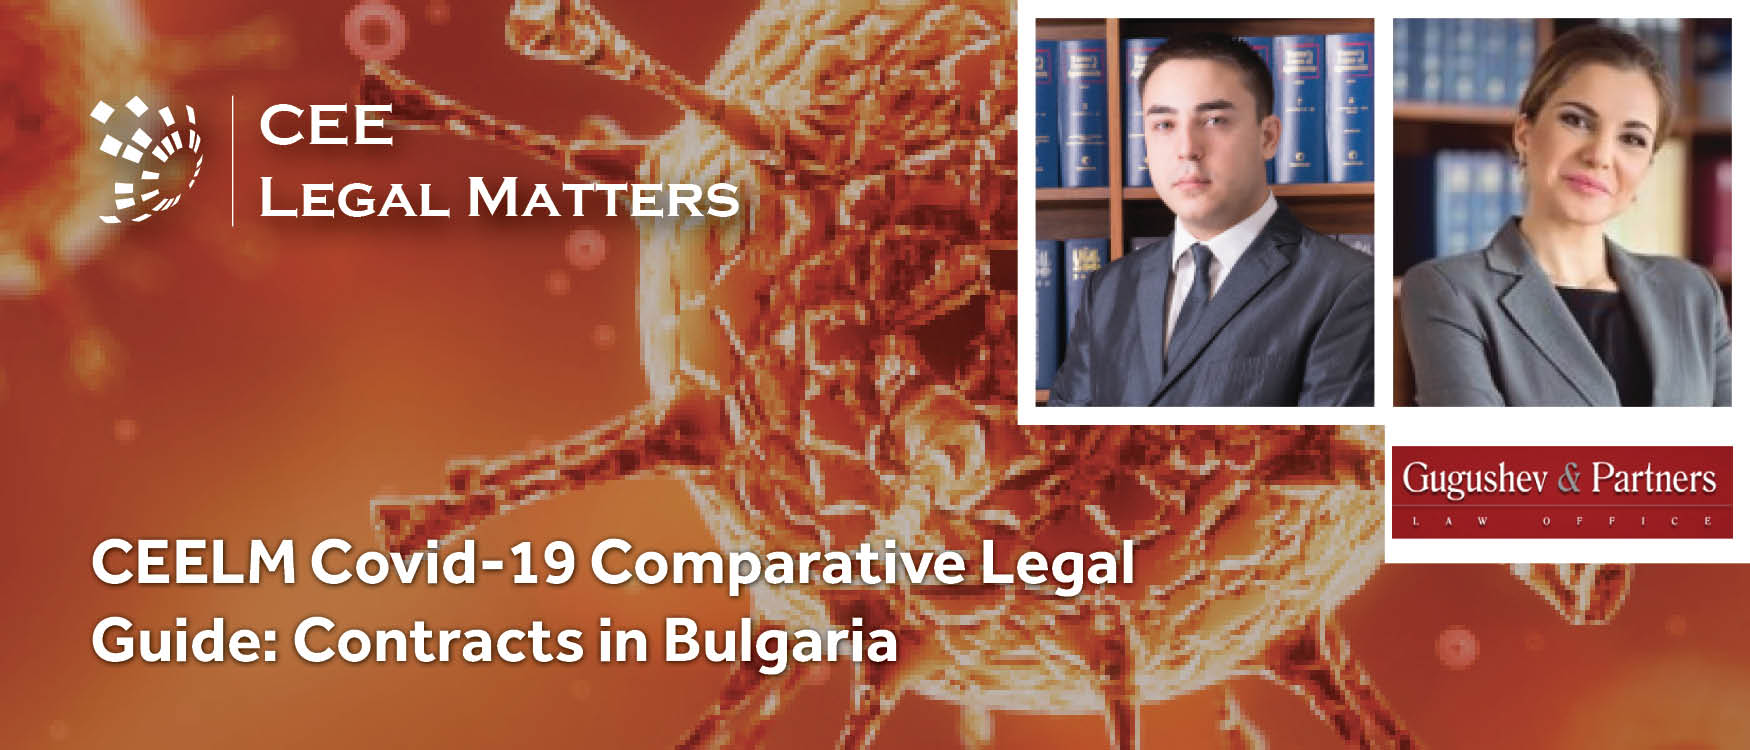 CEELM Covid-19 Comparative Legal Guide: Contracts in Bulgaria